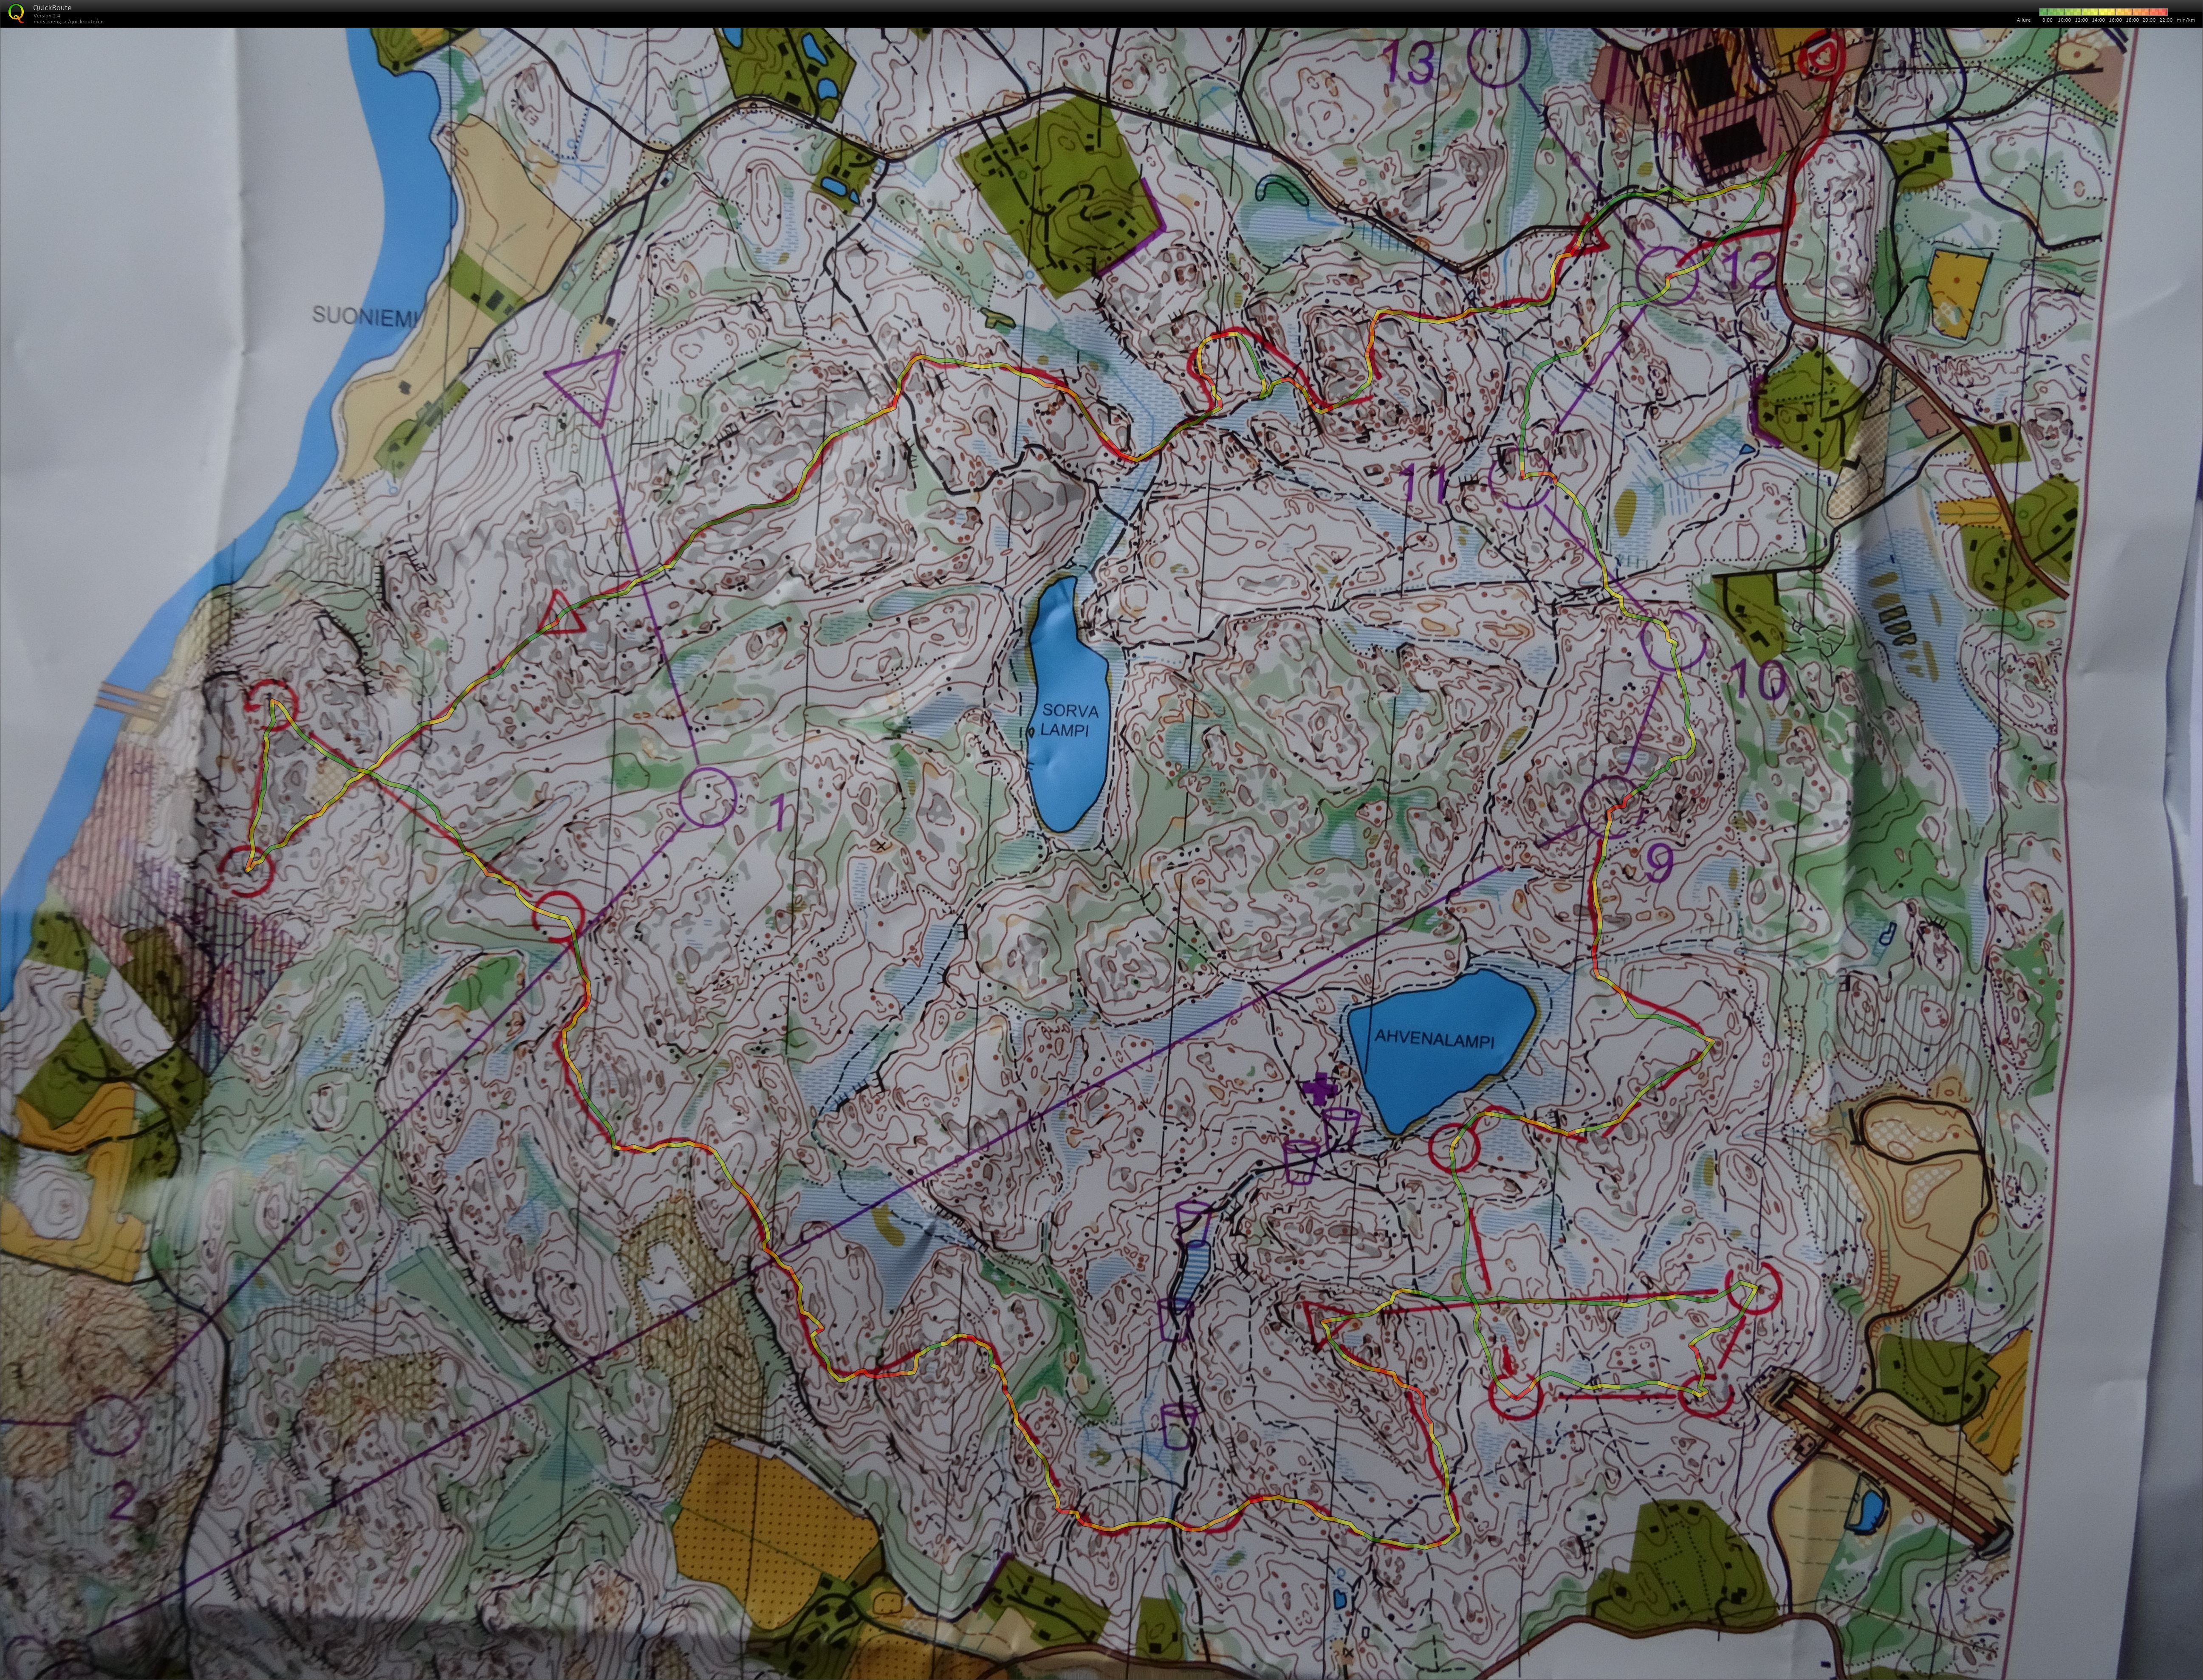 Training Camp Lohja NAVI 1 (27-04-2015)